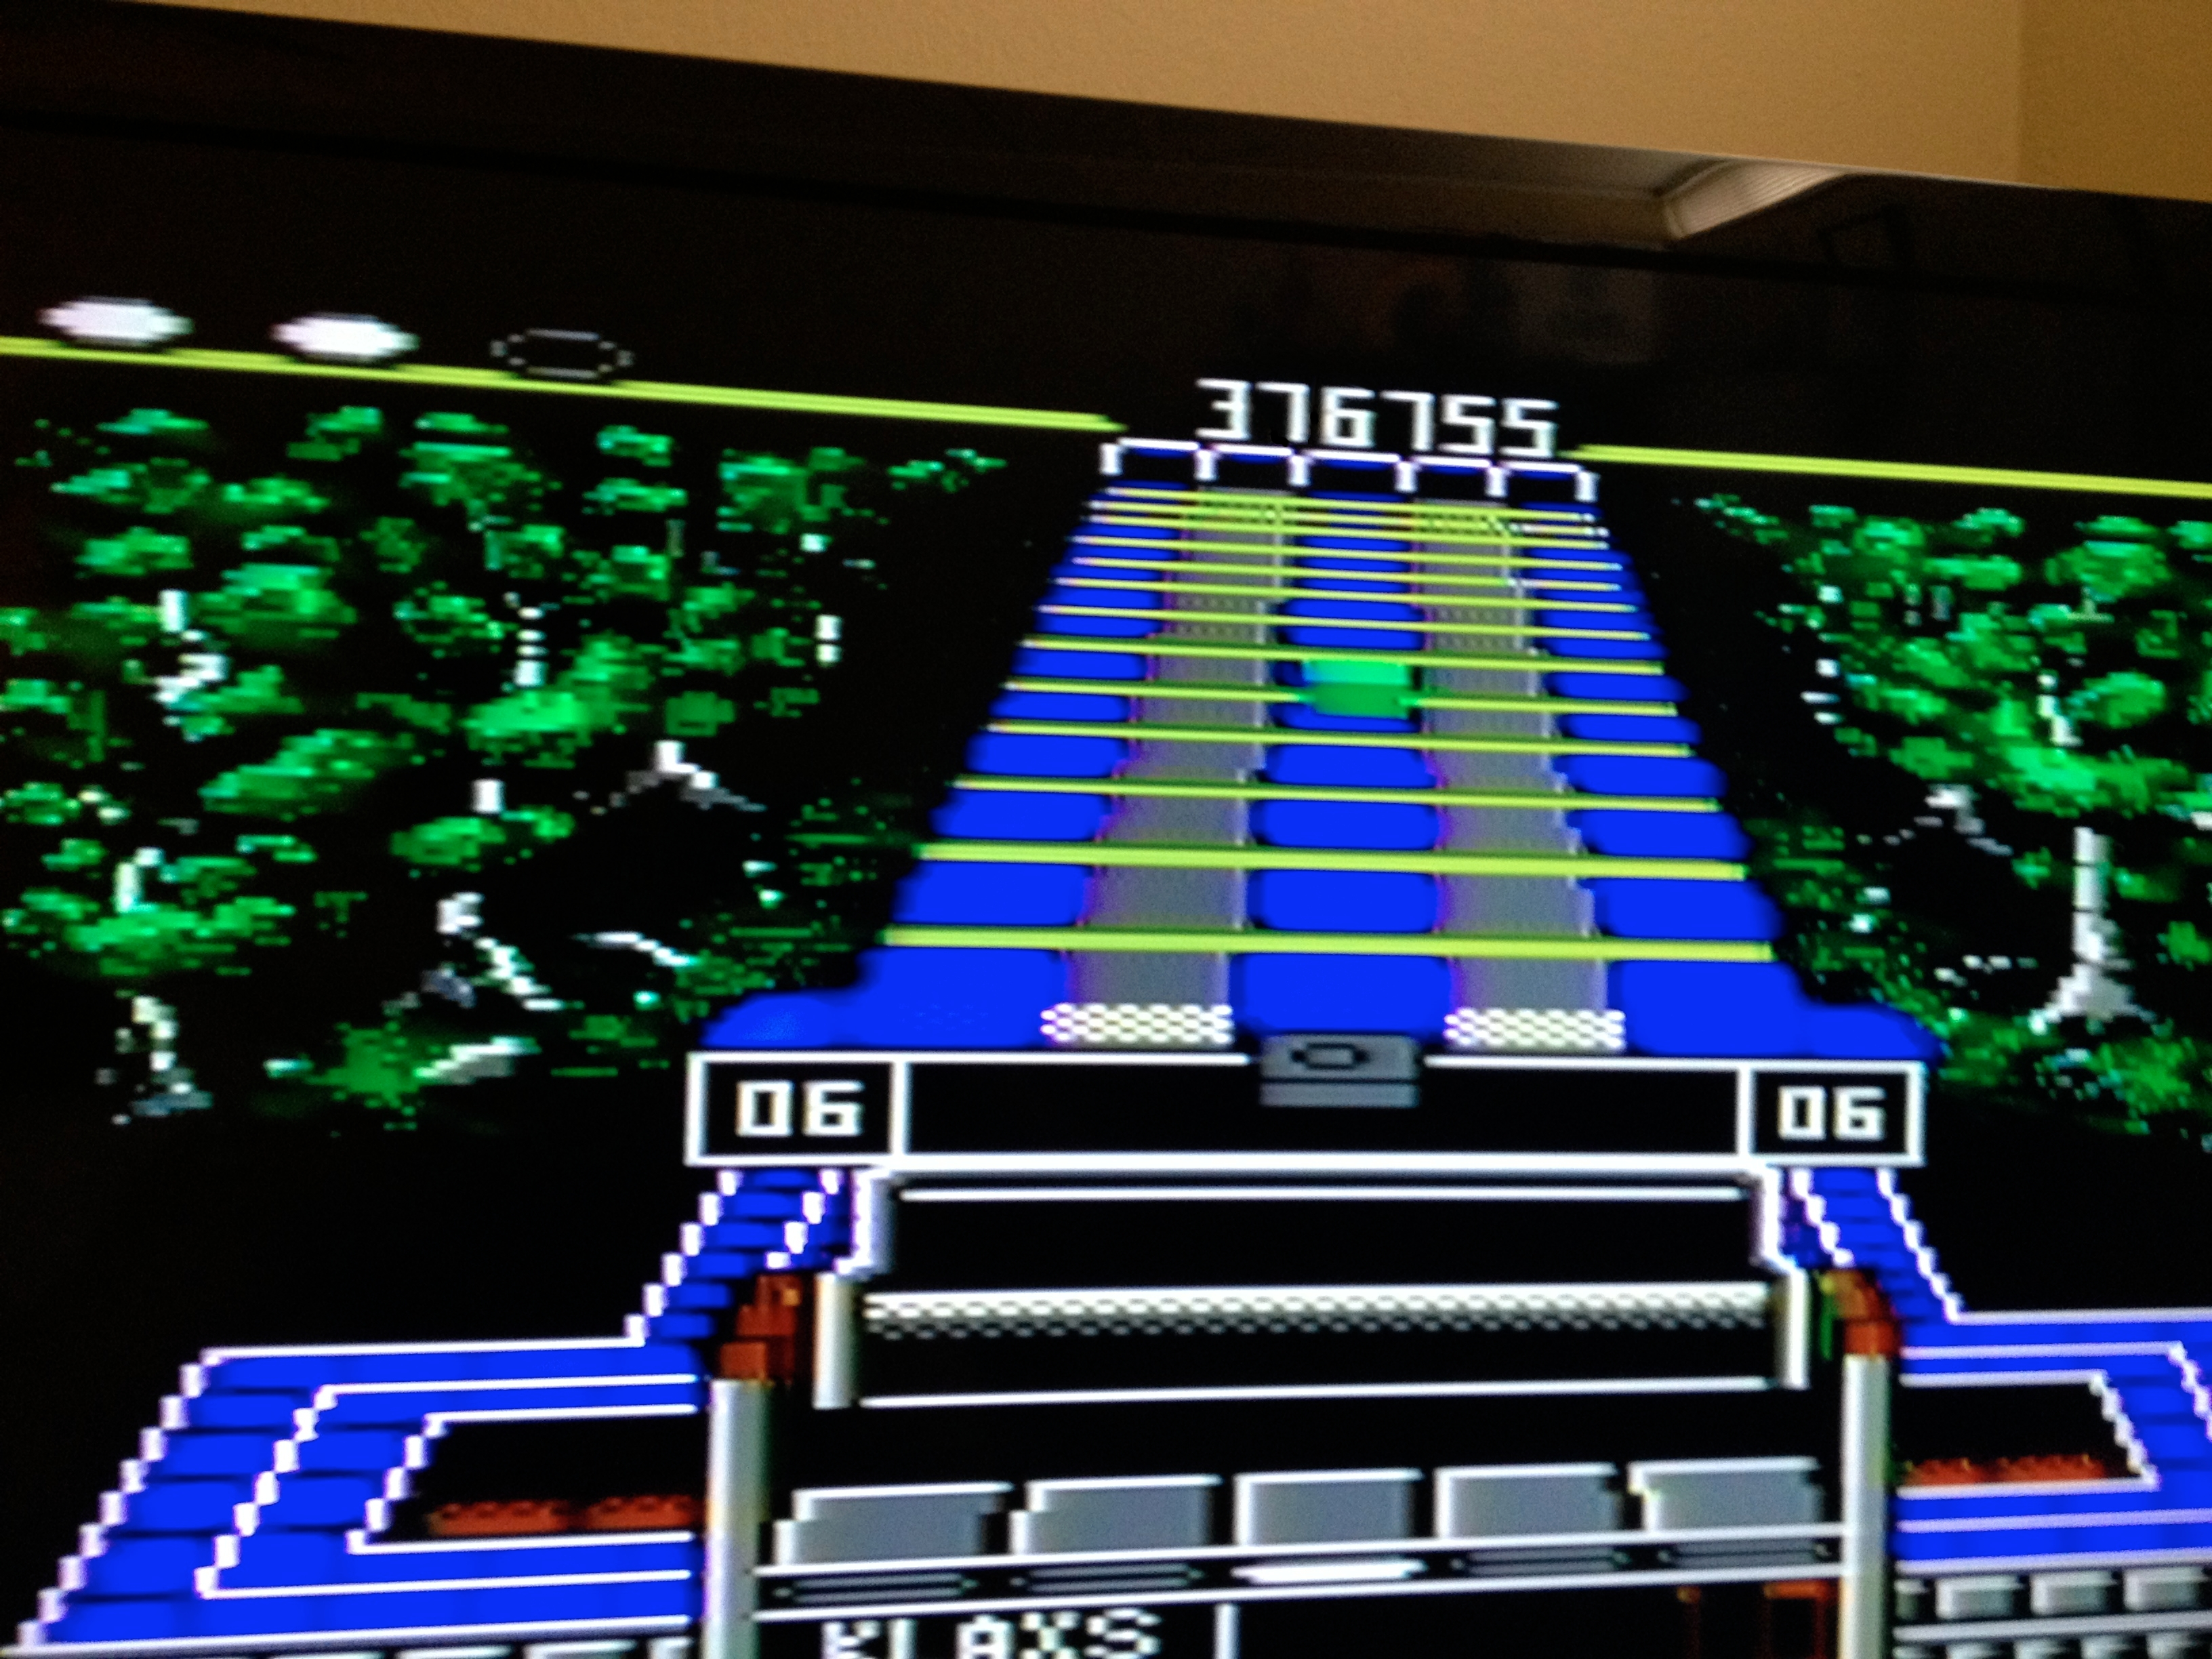 Klax: Normal [Level 01 Start] 376,755 points